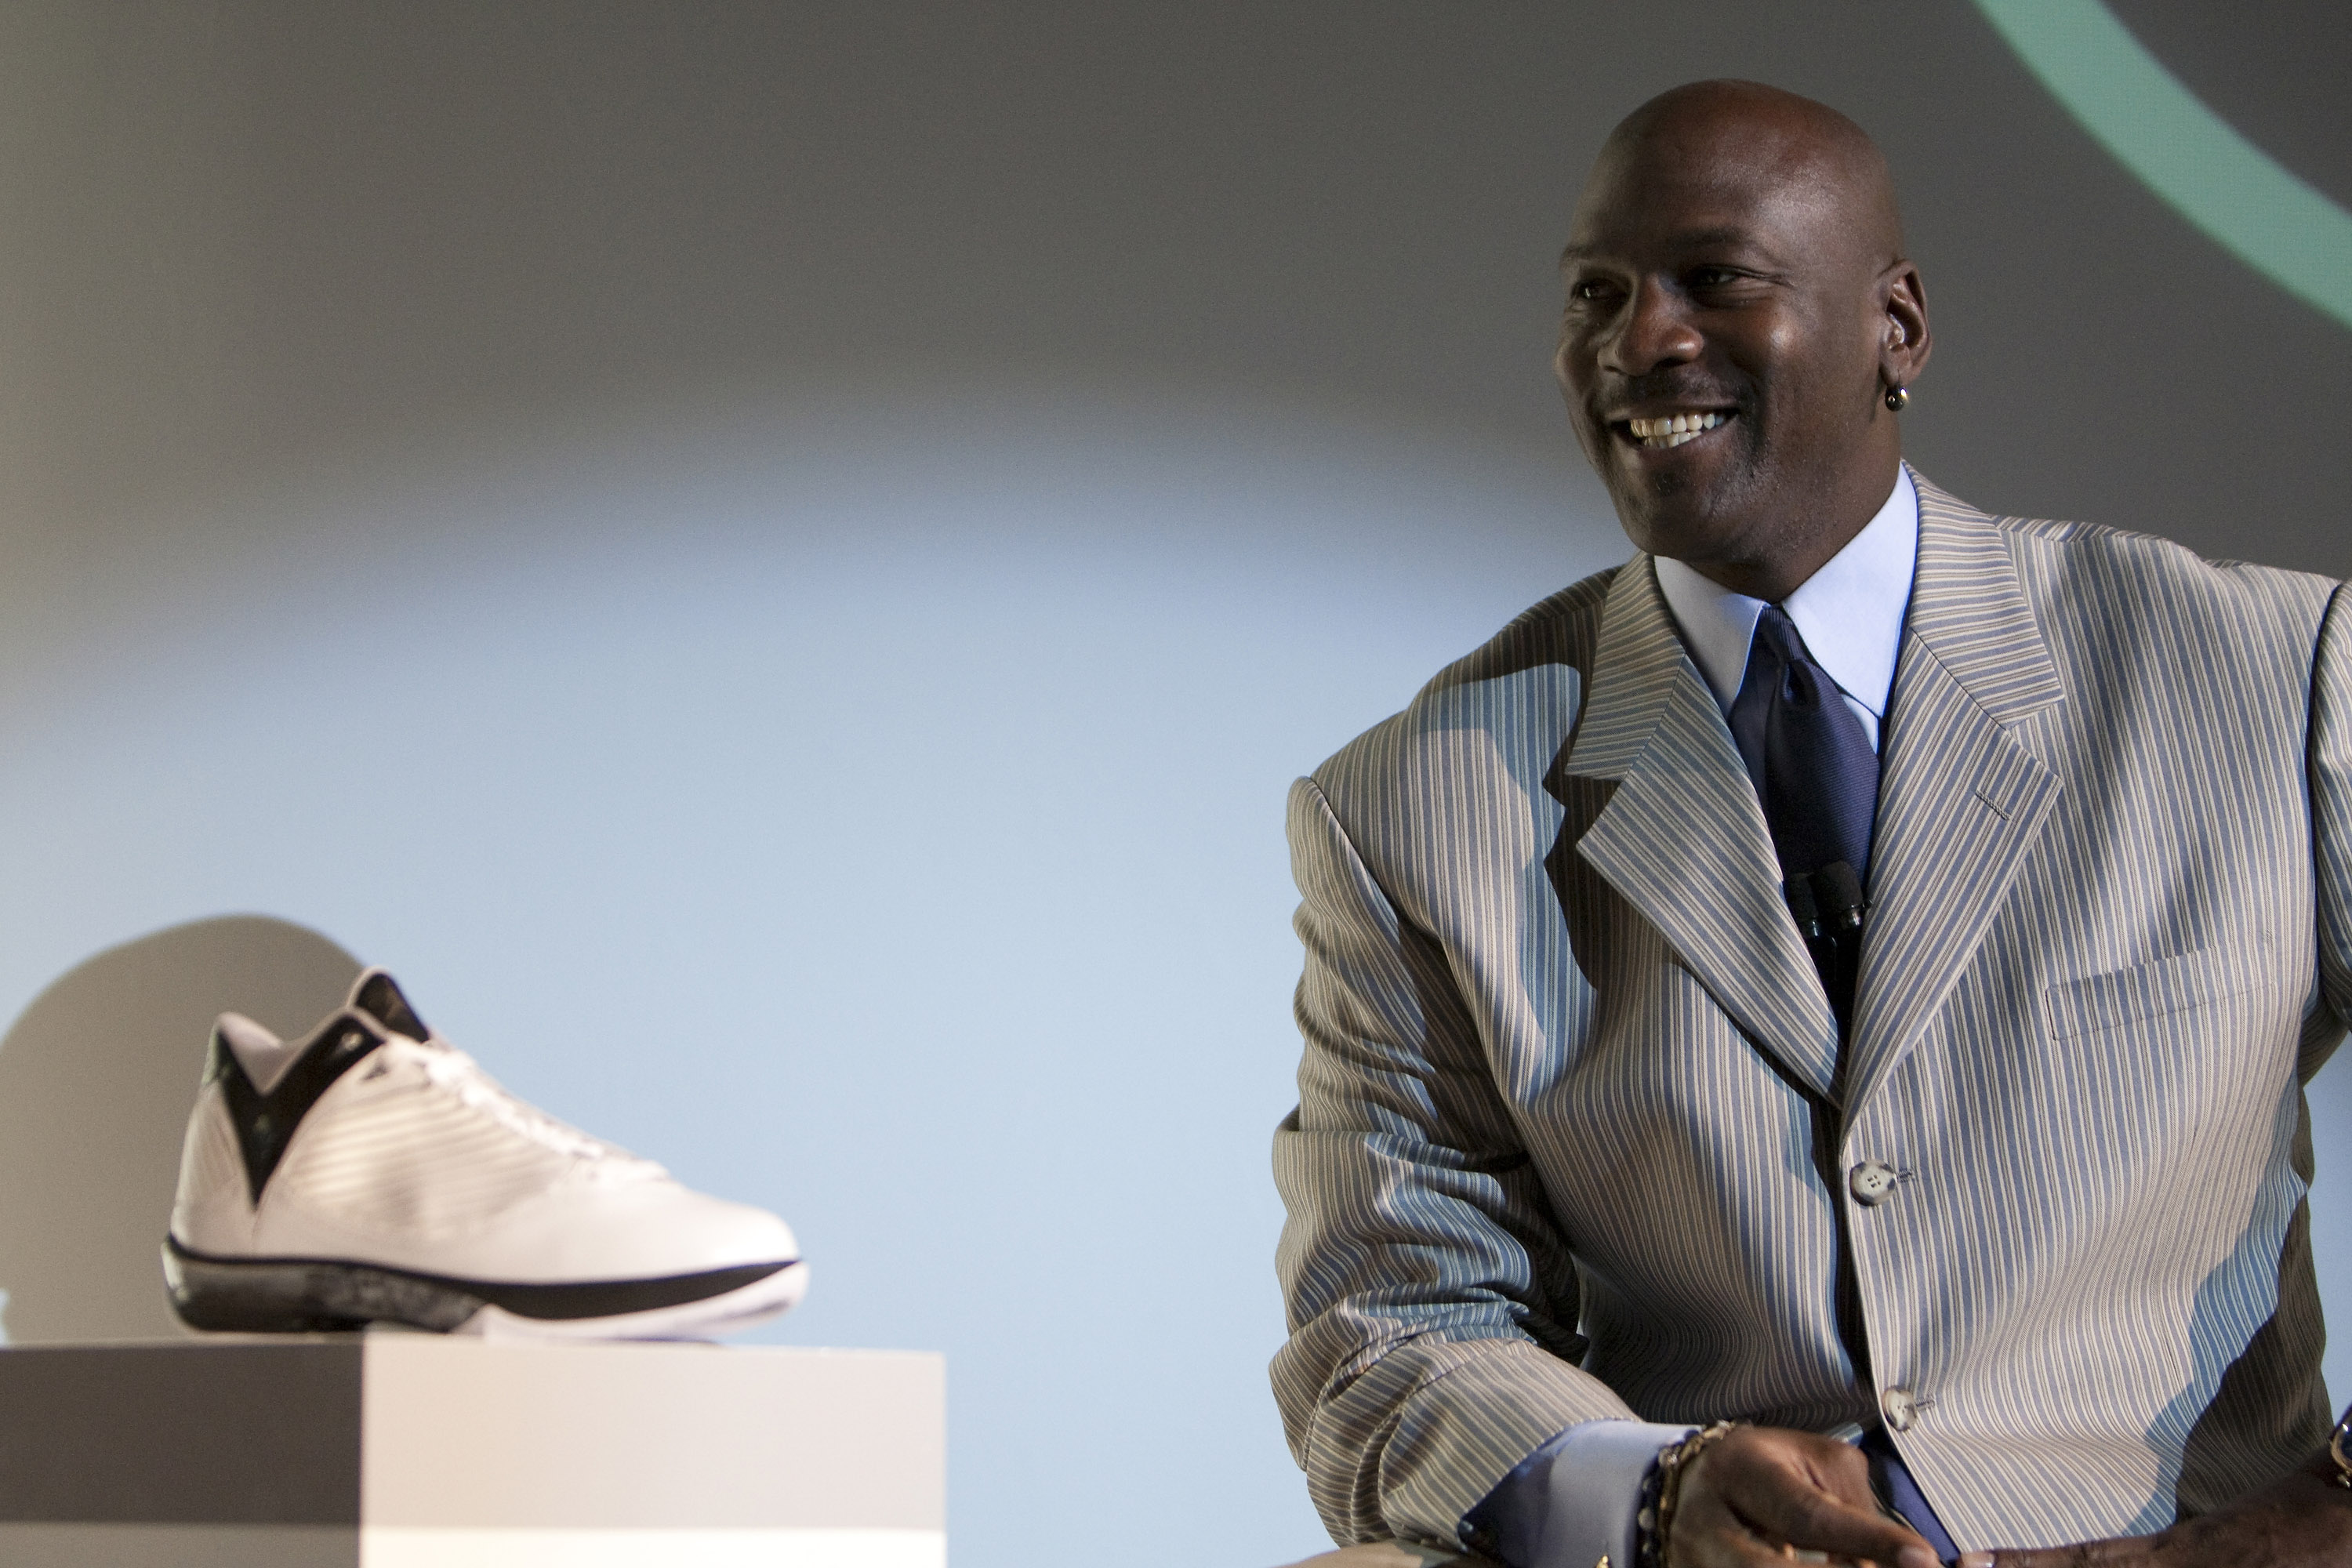 michael jordan brand shoes